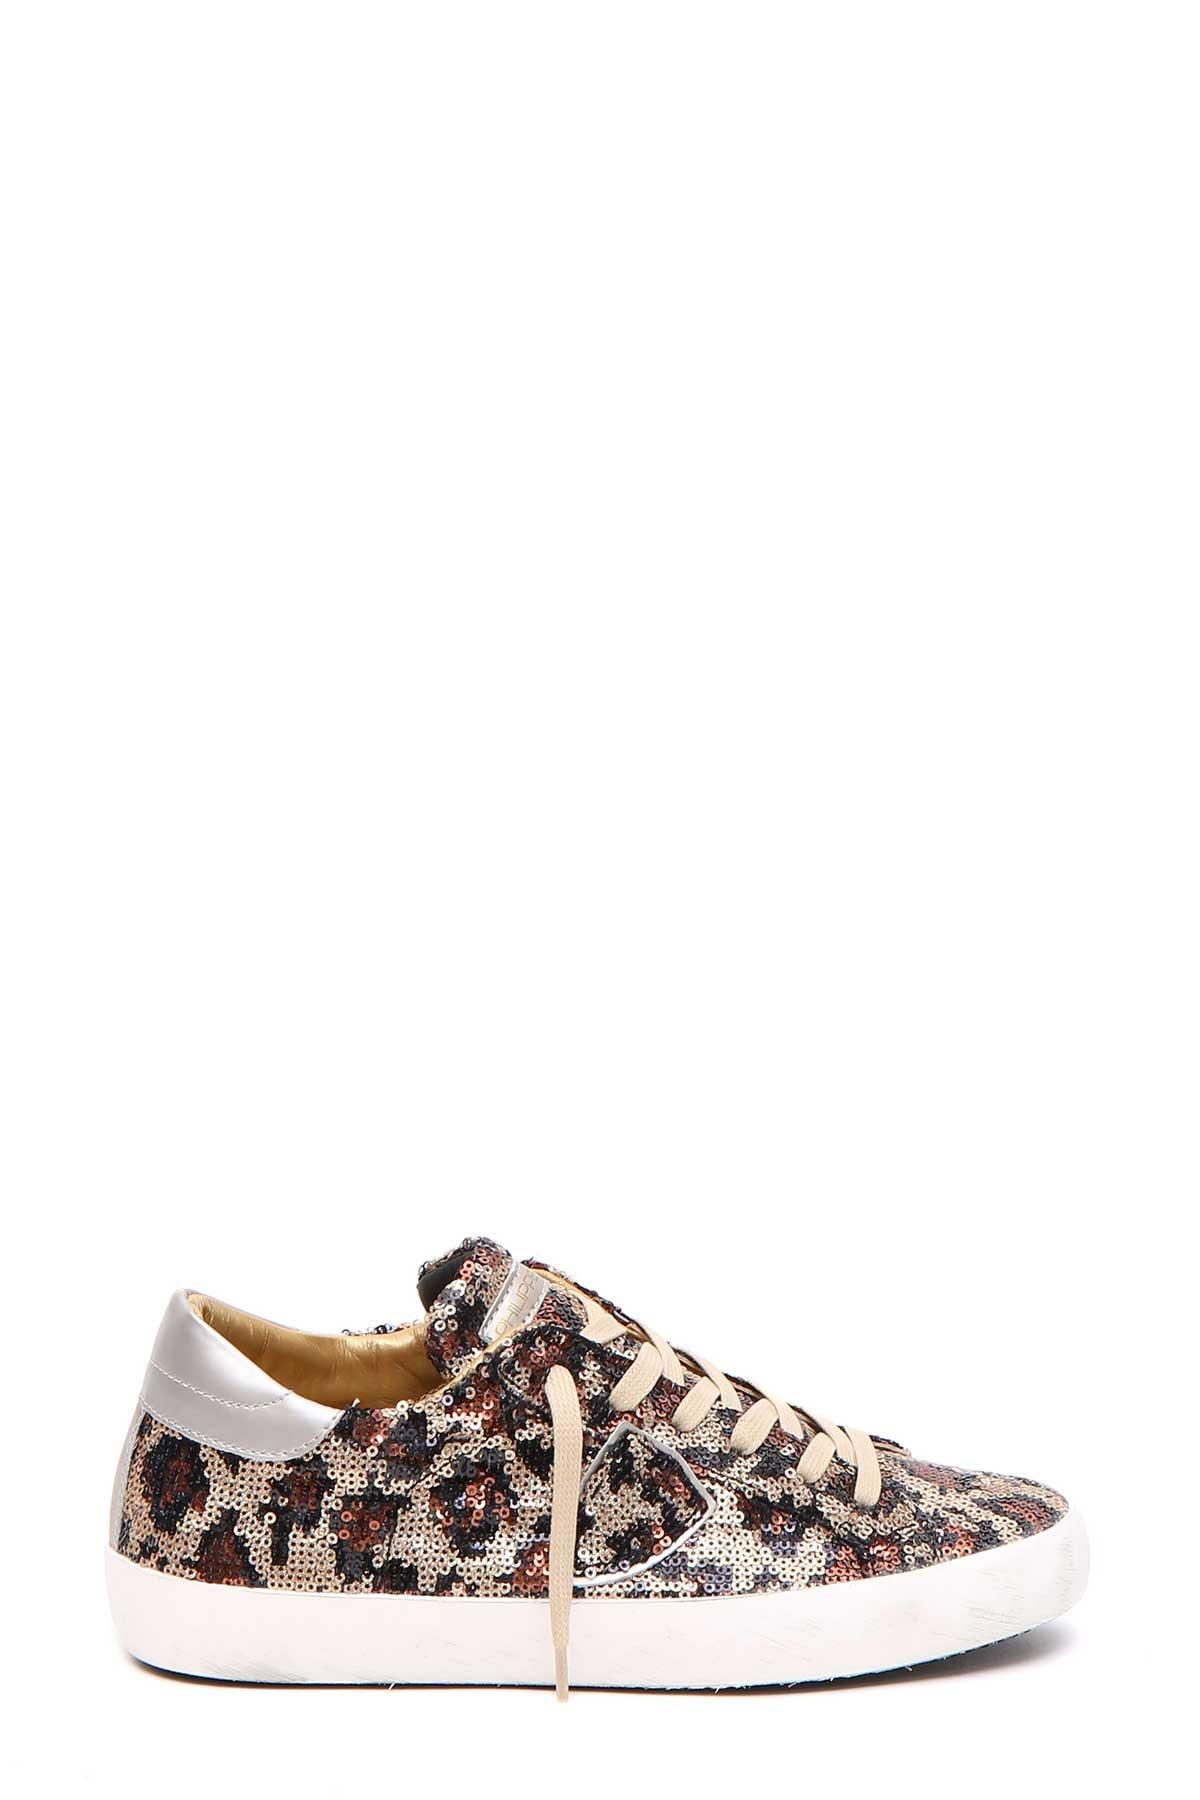 Philippe Model Sequinned Sneakers In Multicolor